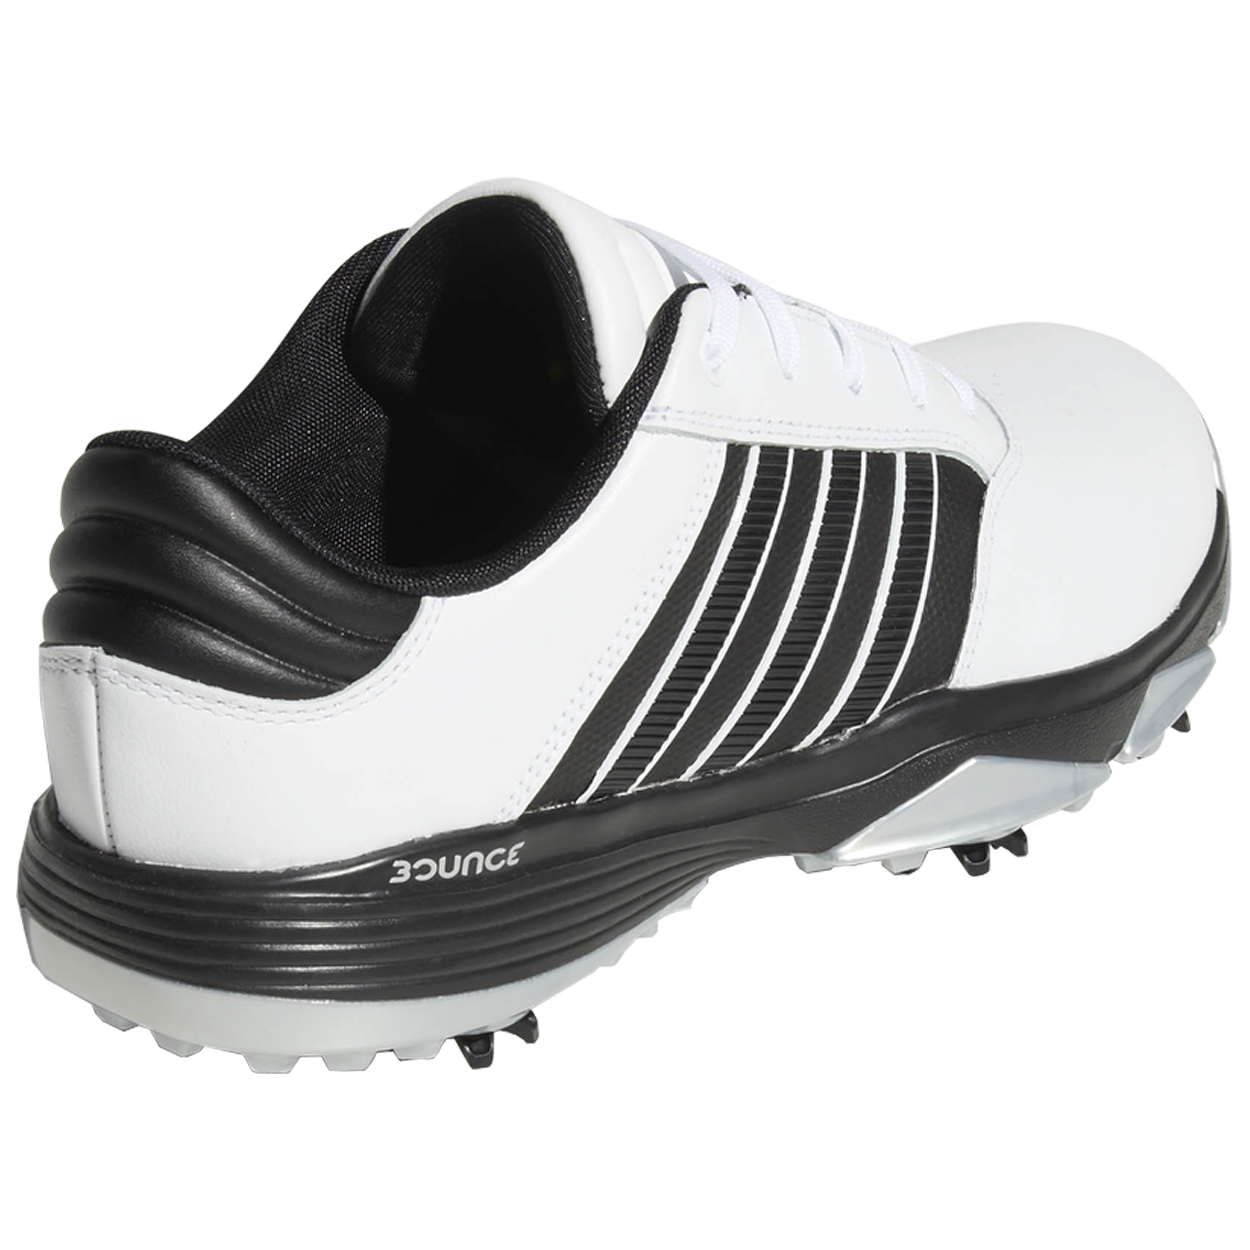 44be8015c17f2 Adidas-Men-039-s-360-Bounce-Golf-Shoes-